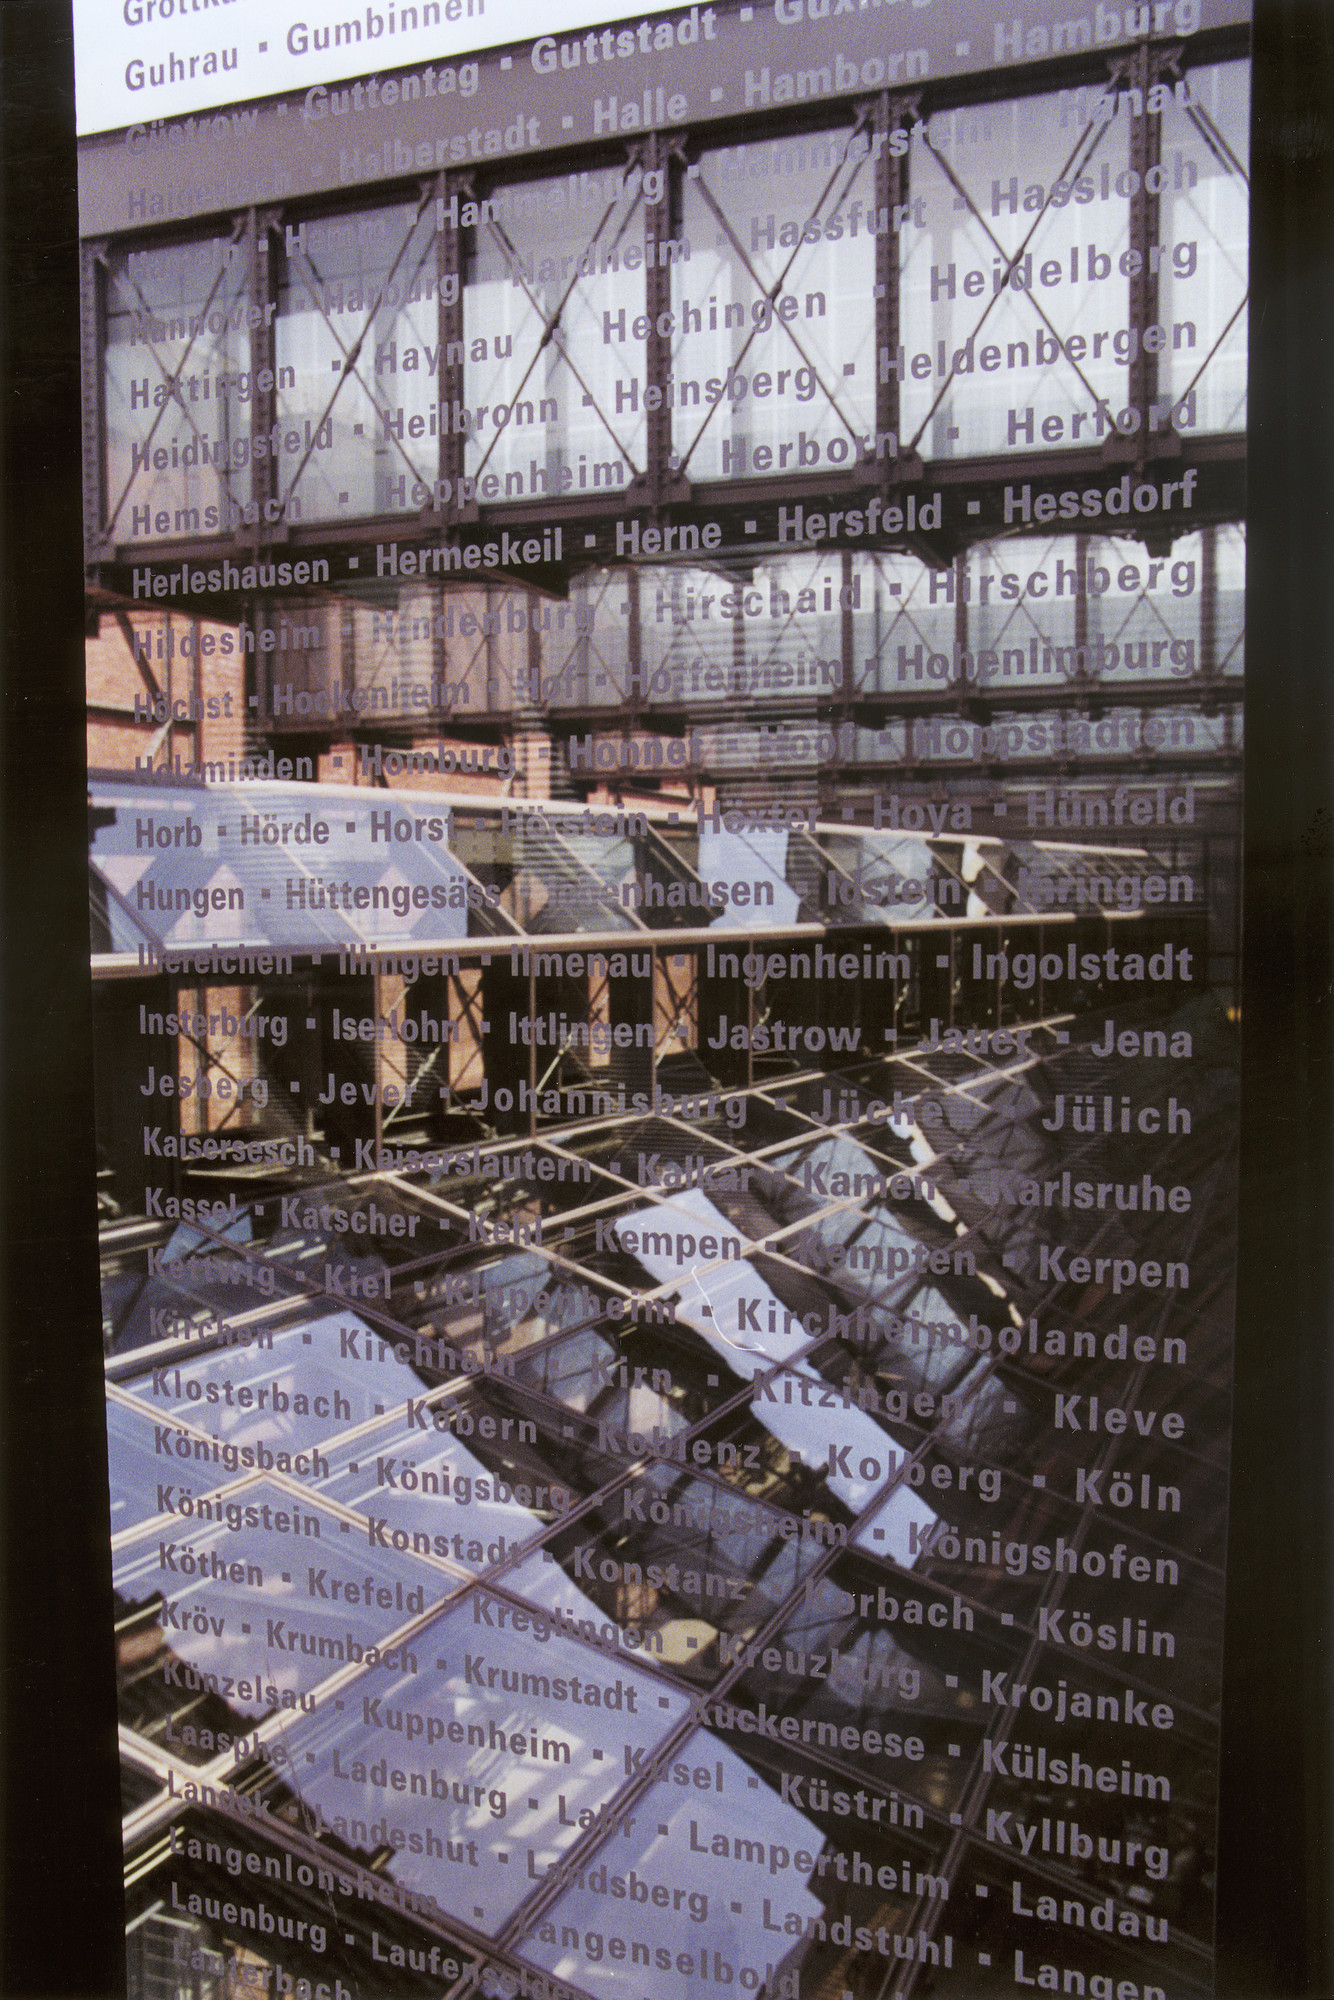 Interior of one of the glass bridges in the permanent exhibition of the U.S. Holocaust Memorial Museum, etched with the names of communities that were destroyed during the Holocaust.